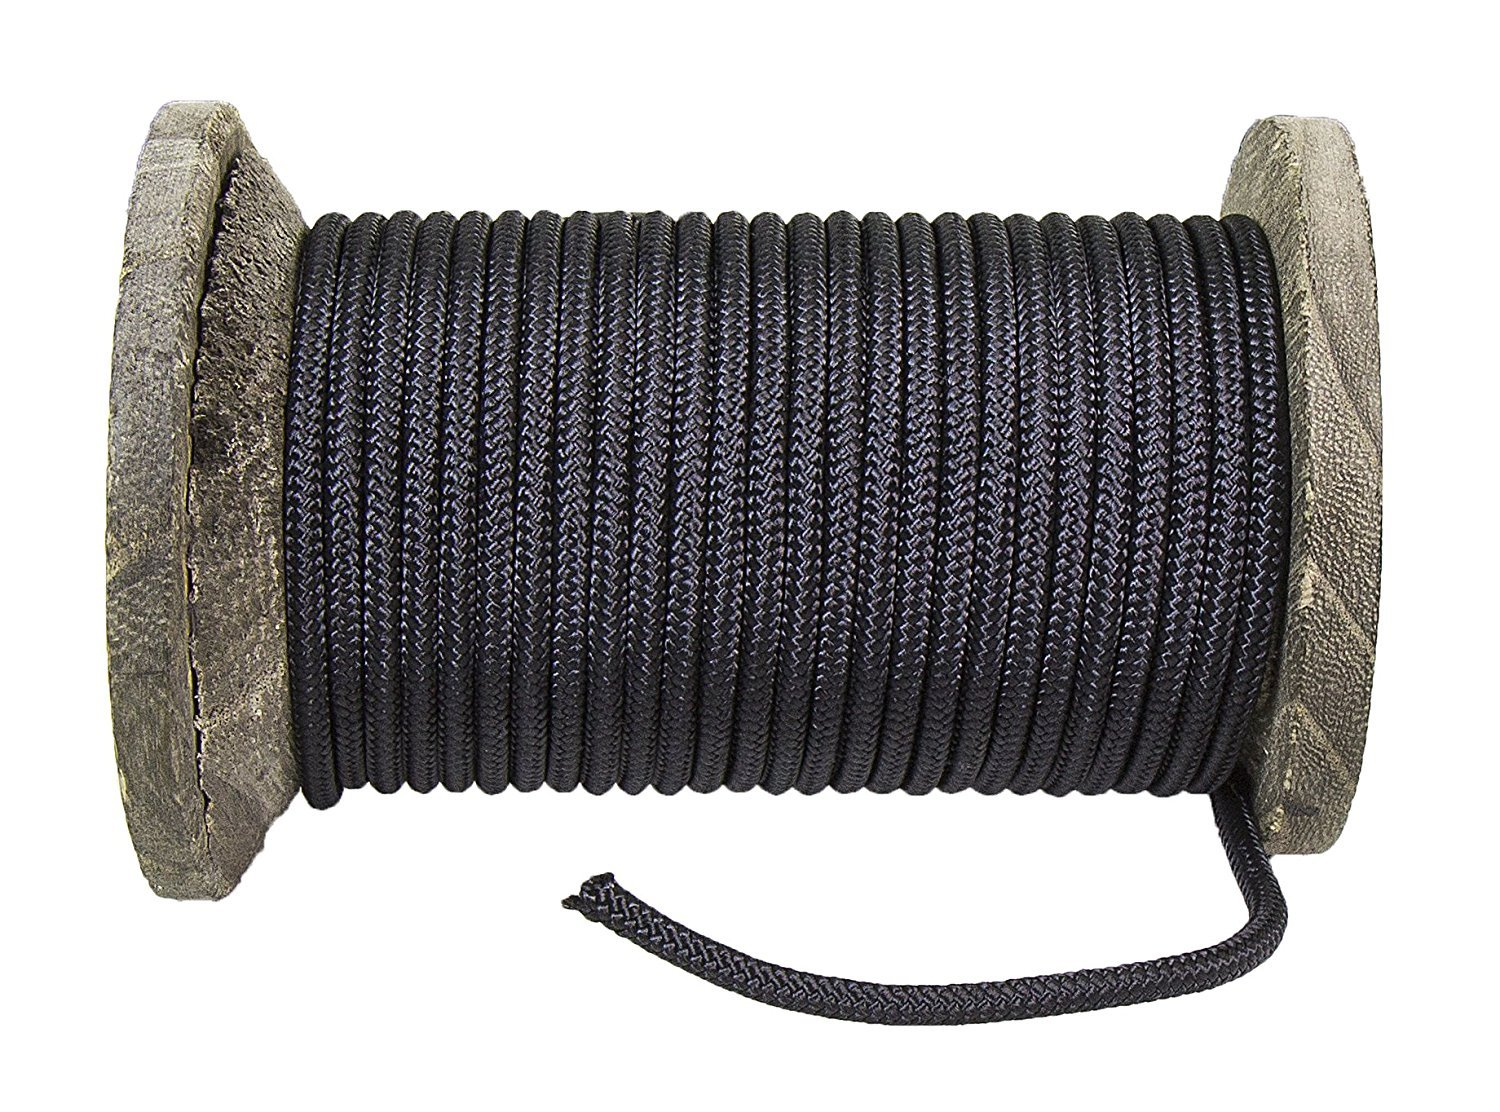 Ravenox Premium Polyester Accessory Cord Campers and Nautical Fishing Hunting Outdoor Rope for Camping Accessories Camping Essentials for Cargo Tie-Downs Boating Polyester Rope and Cord